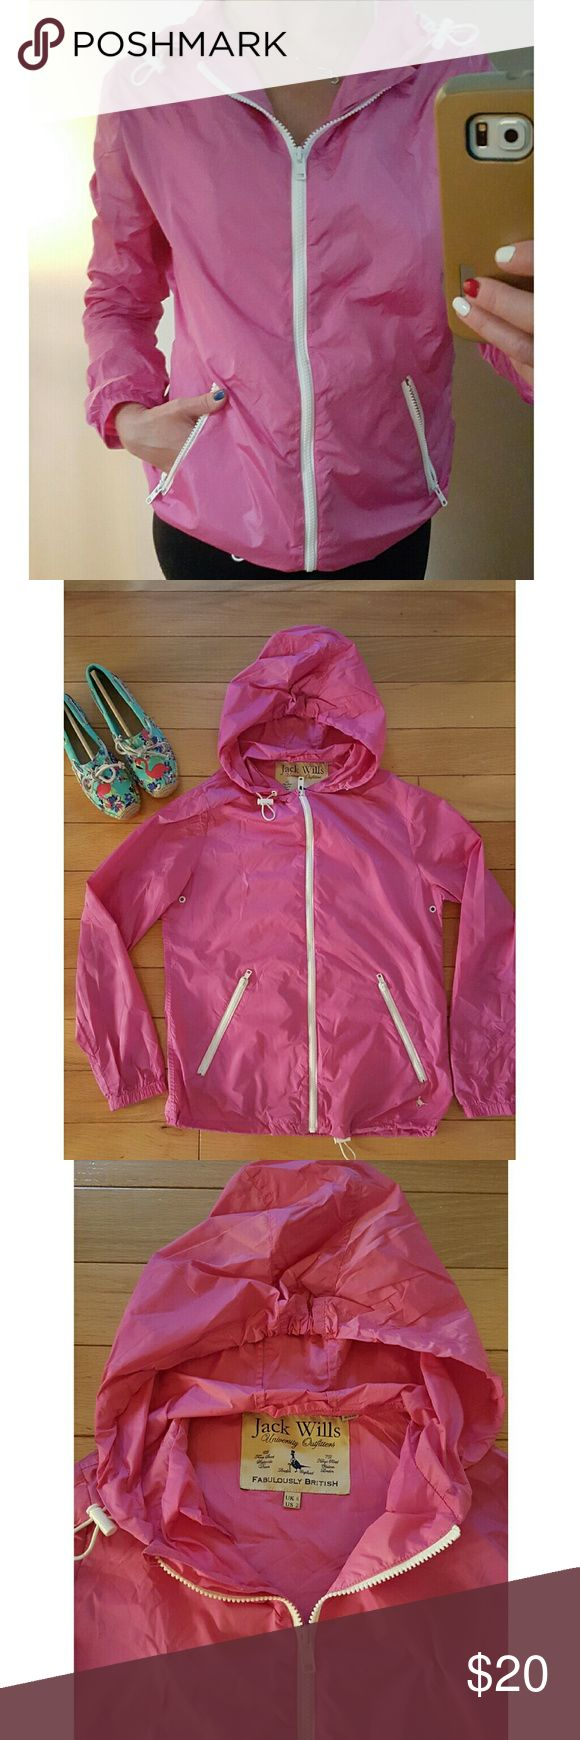 Jack Wills pink  rain jacket/wind breaker sz 2 Jack Wills pink hooded rain jacket/windbreaker.  Zipper front,  zip pockets, adjustable waist and hood. U.S sz 2 Worn only a couple times, like new.   Bundle with either turquoise Sperry or New Balance sneakers for extra savings (see separate listings) Jack Wills  Jackets & Coats